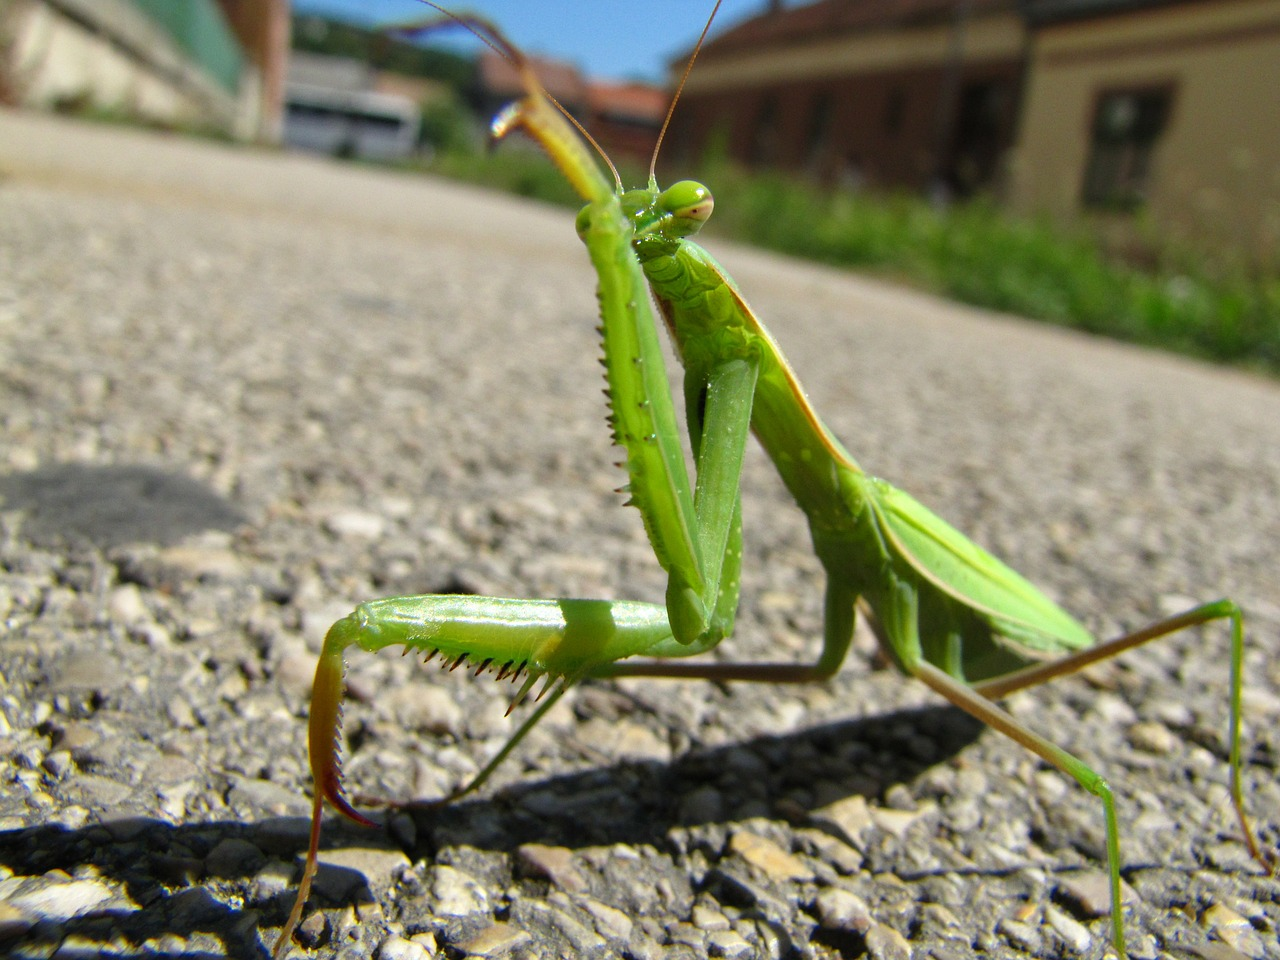 praying mantis animal street free photo